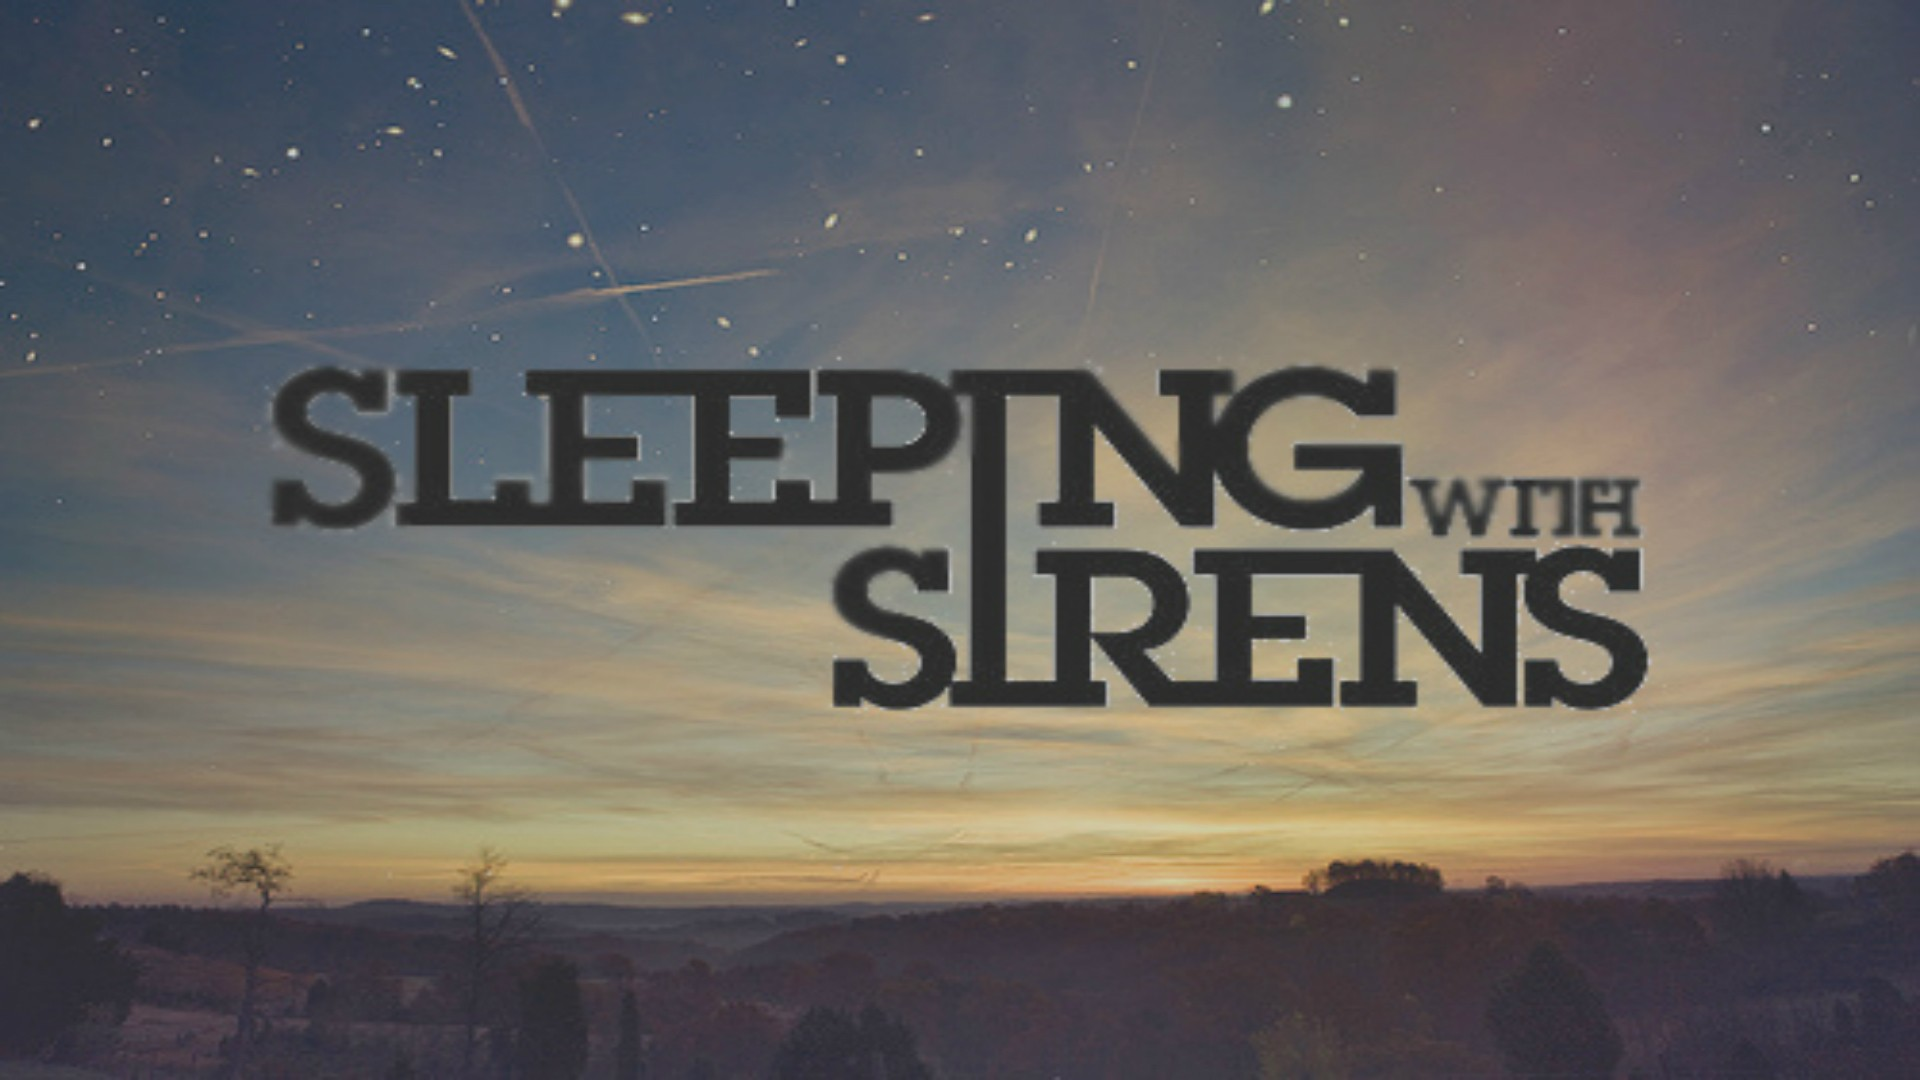 Swedish House Mafia Hd Wallpapers Sleeping With Sirens Wallpaper 1920x1080 70223